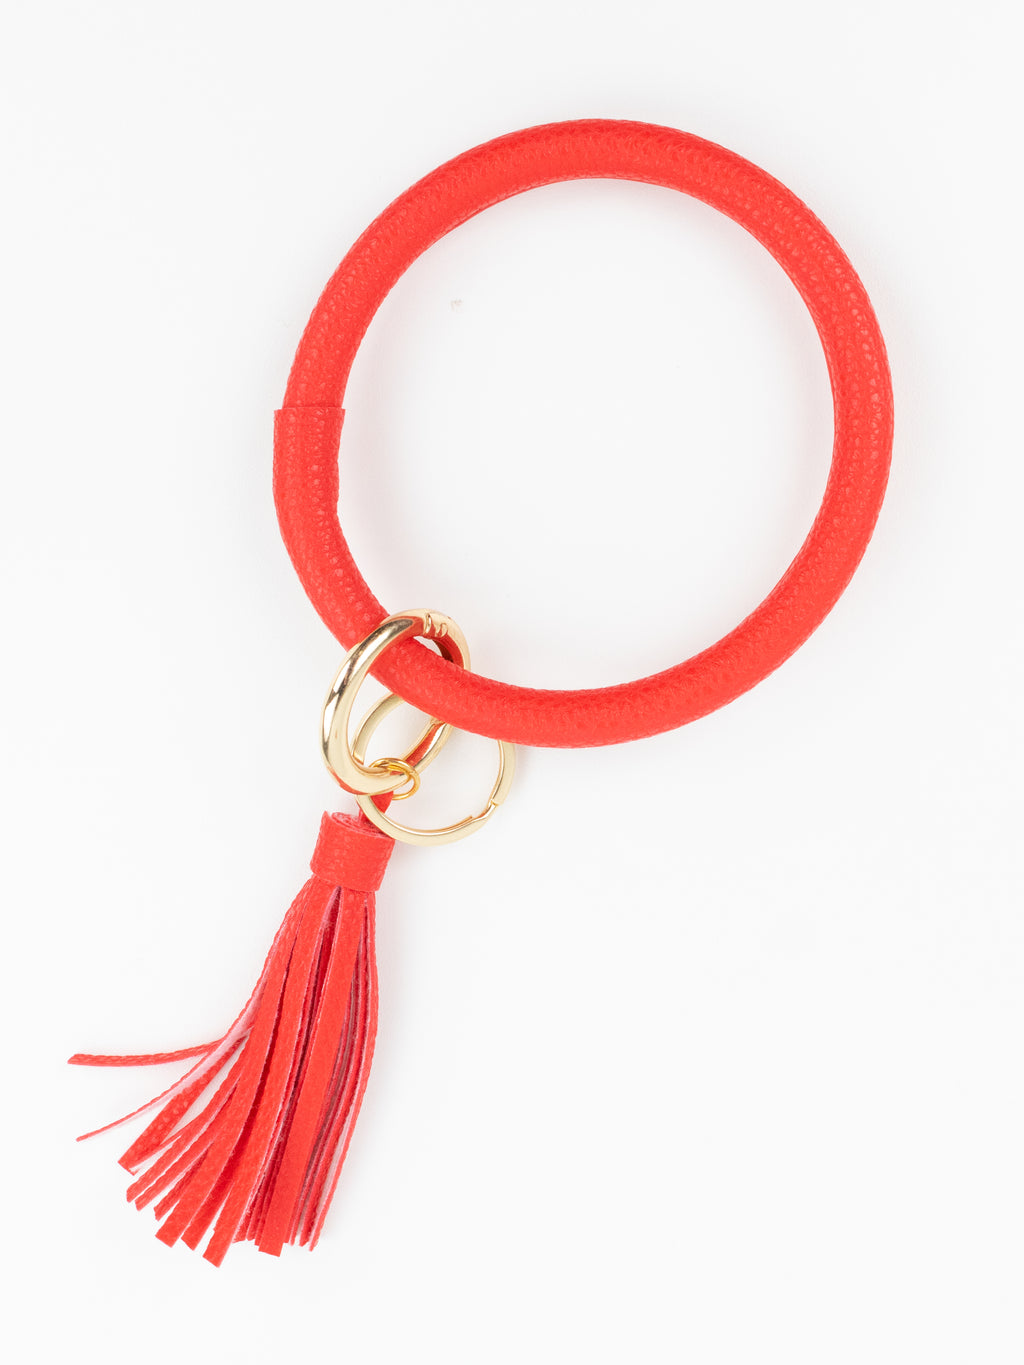 Bangle Bracelet Key Ring - Red